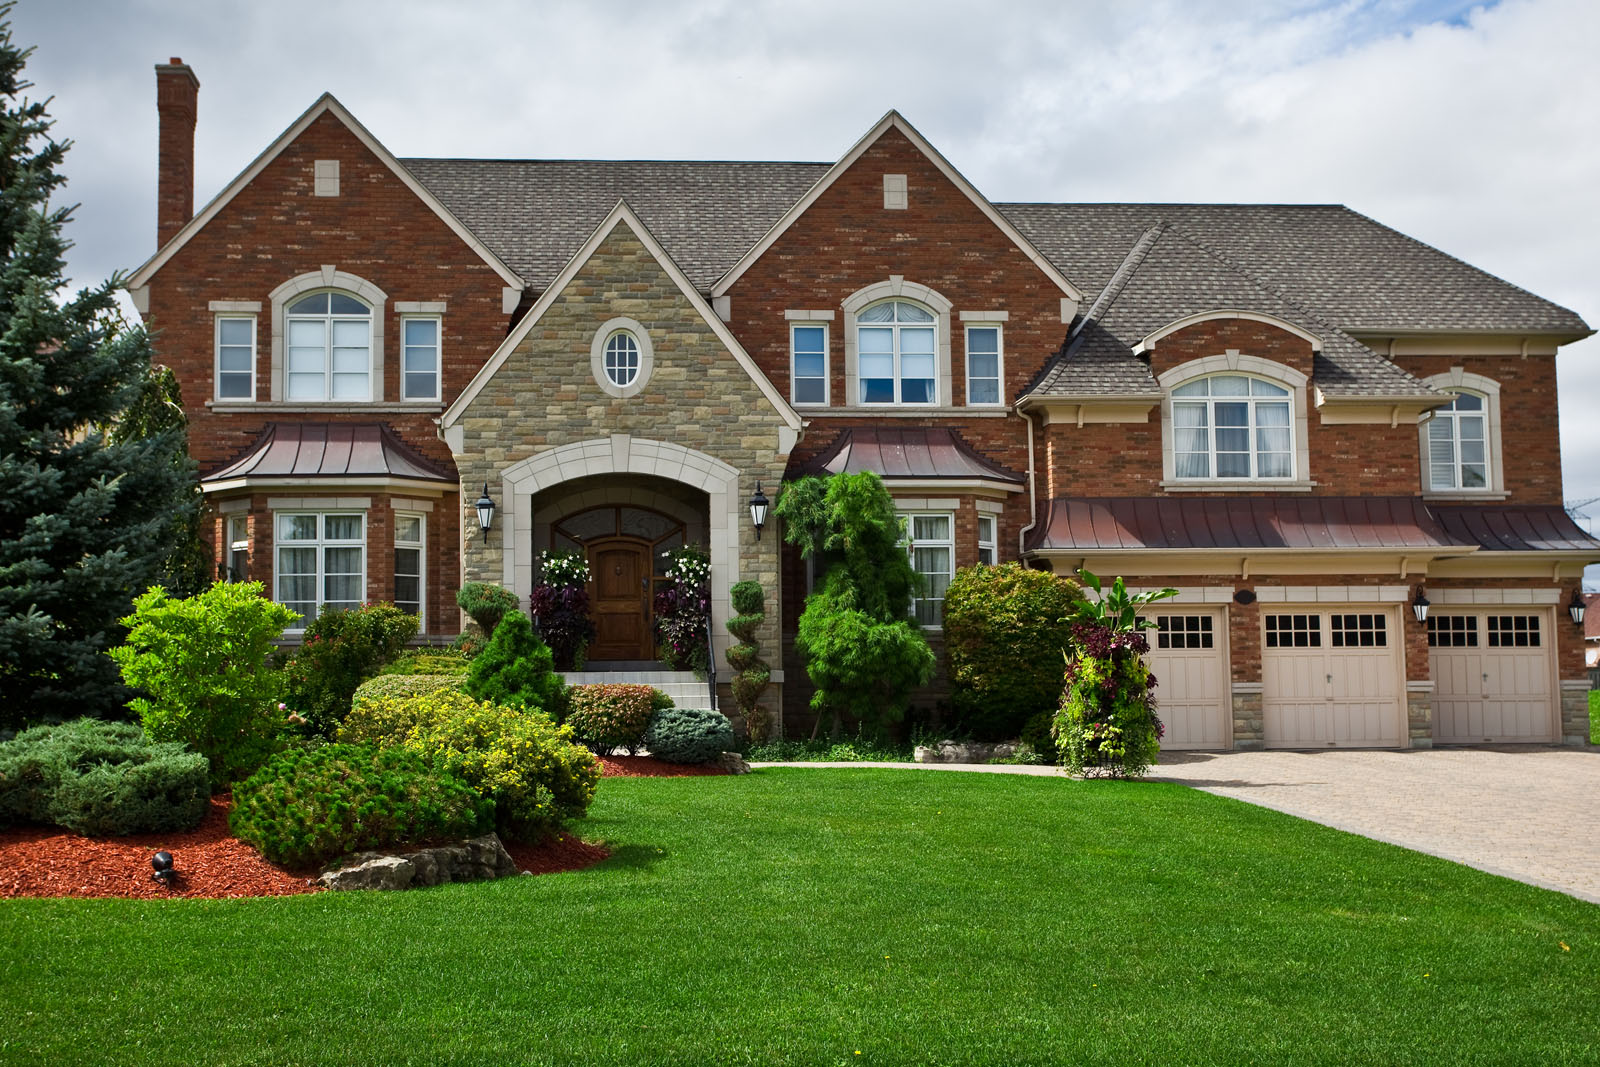 Upsizing Your Home: When to Think About Buying a Luxury Home